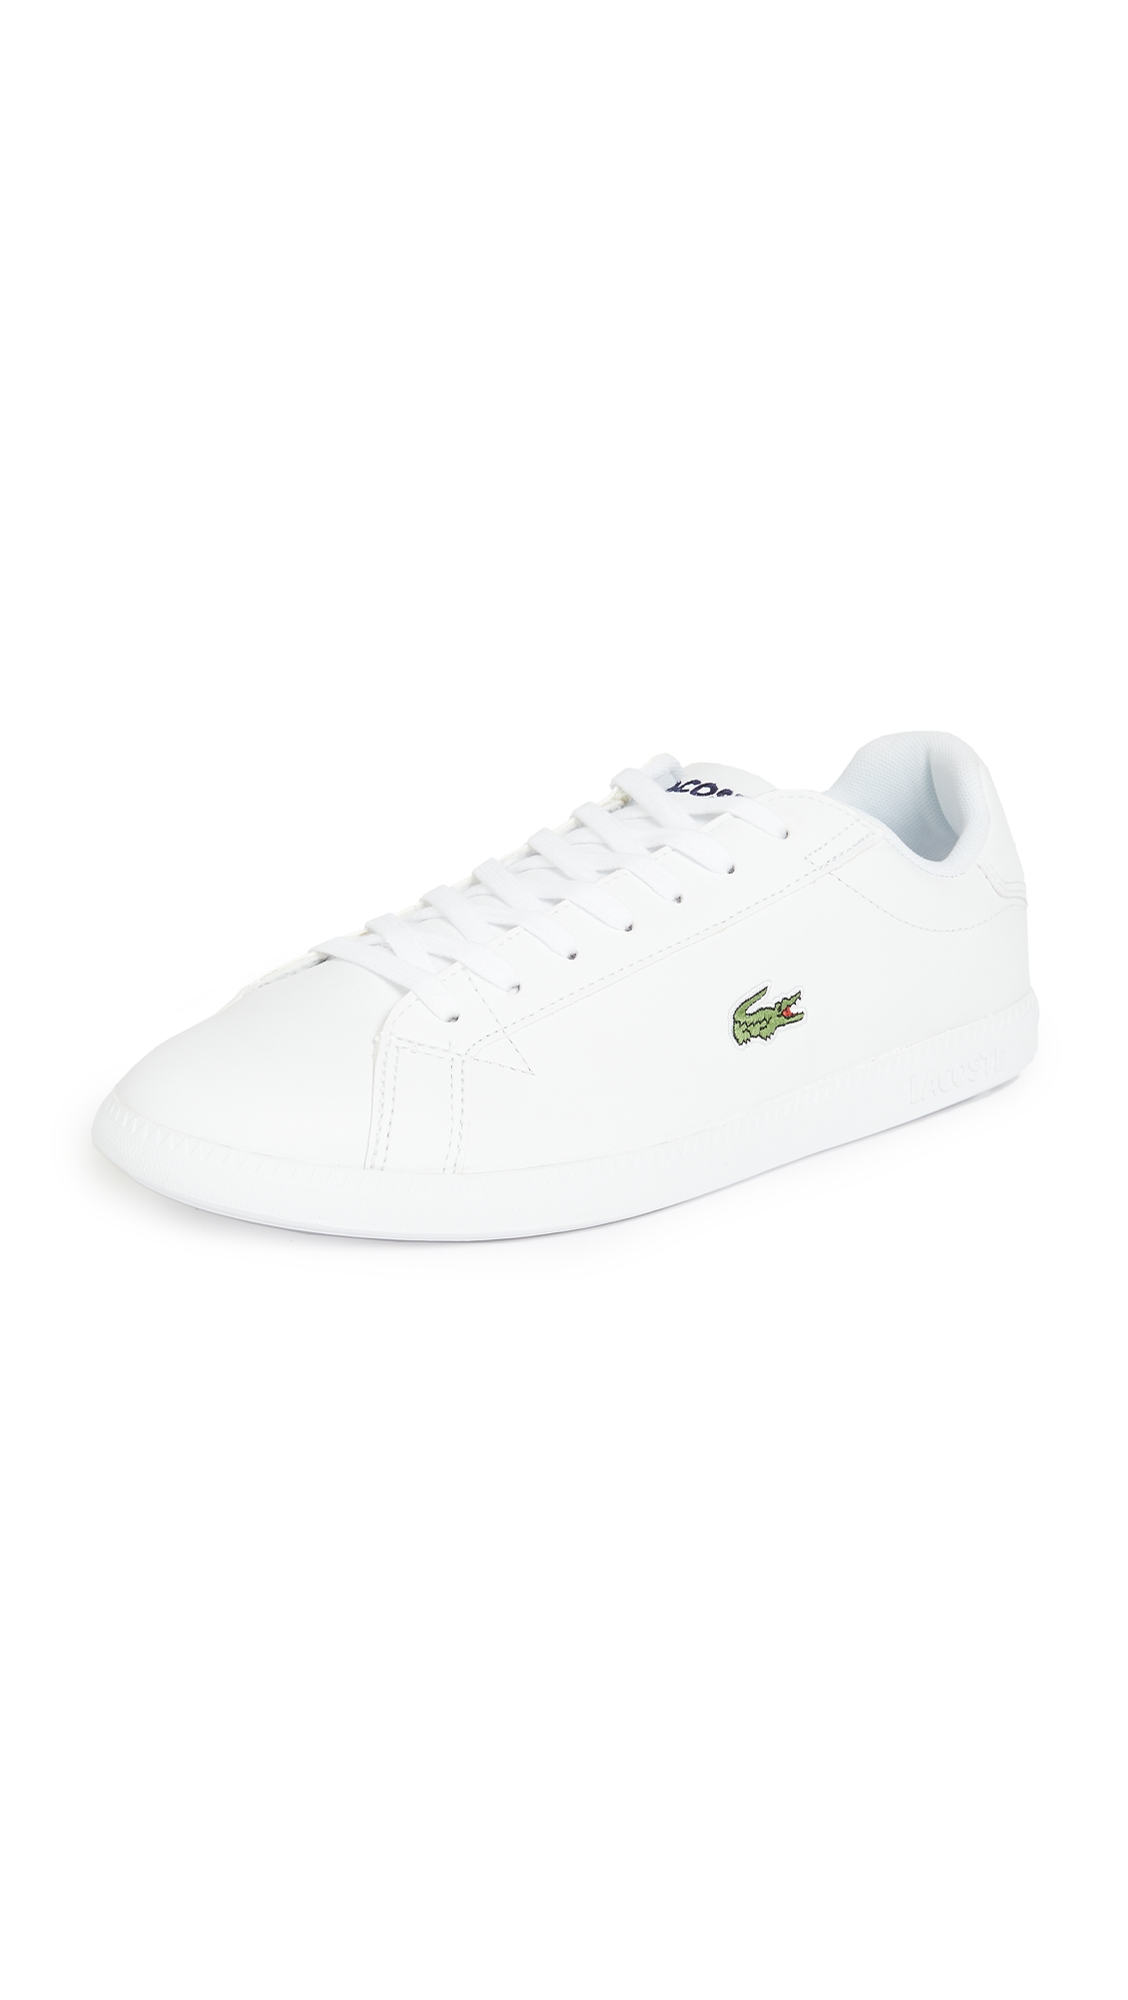 Lacoste Graduate Sneakers White With Gold Croc In White/white